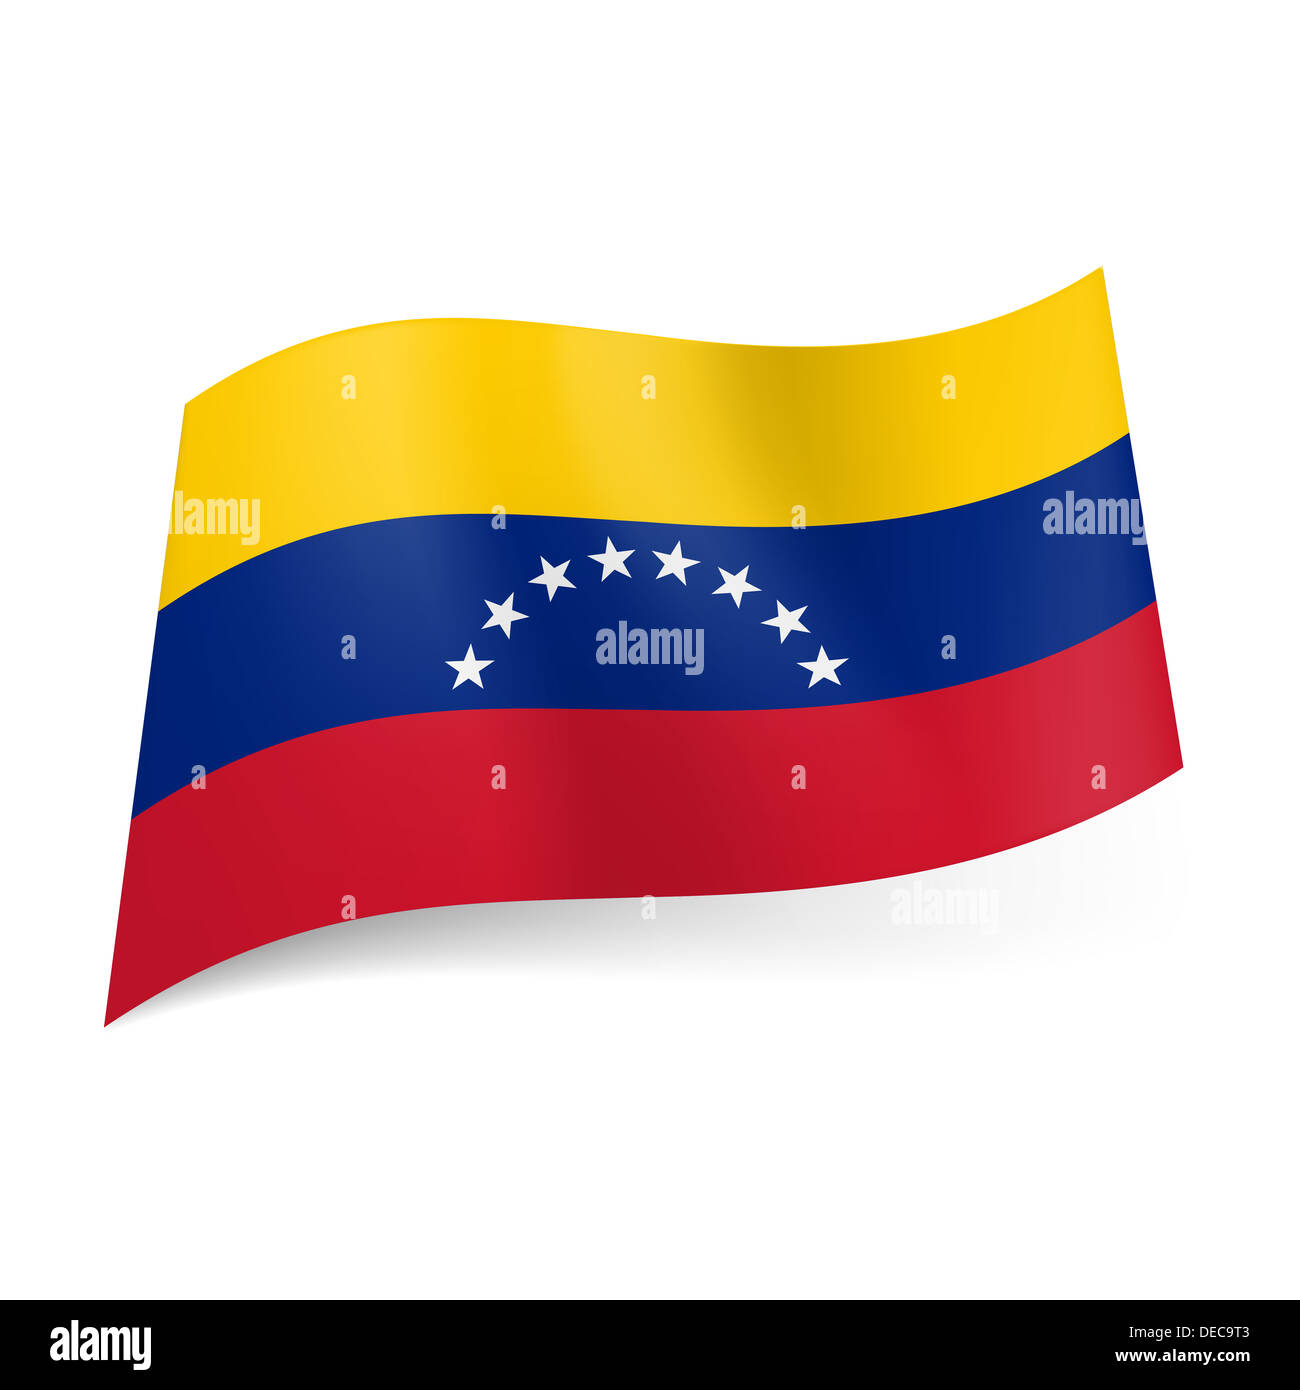 File Flag Blue Yellow Red 5x3 Svg Wikimedia Commons